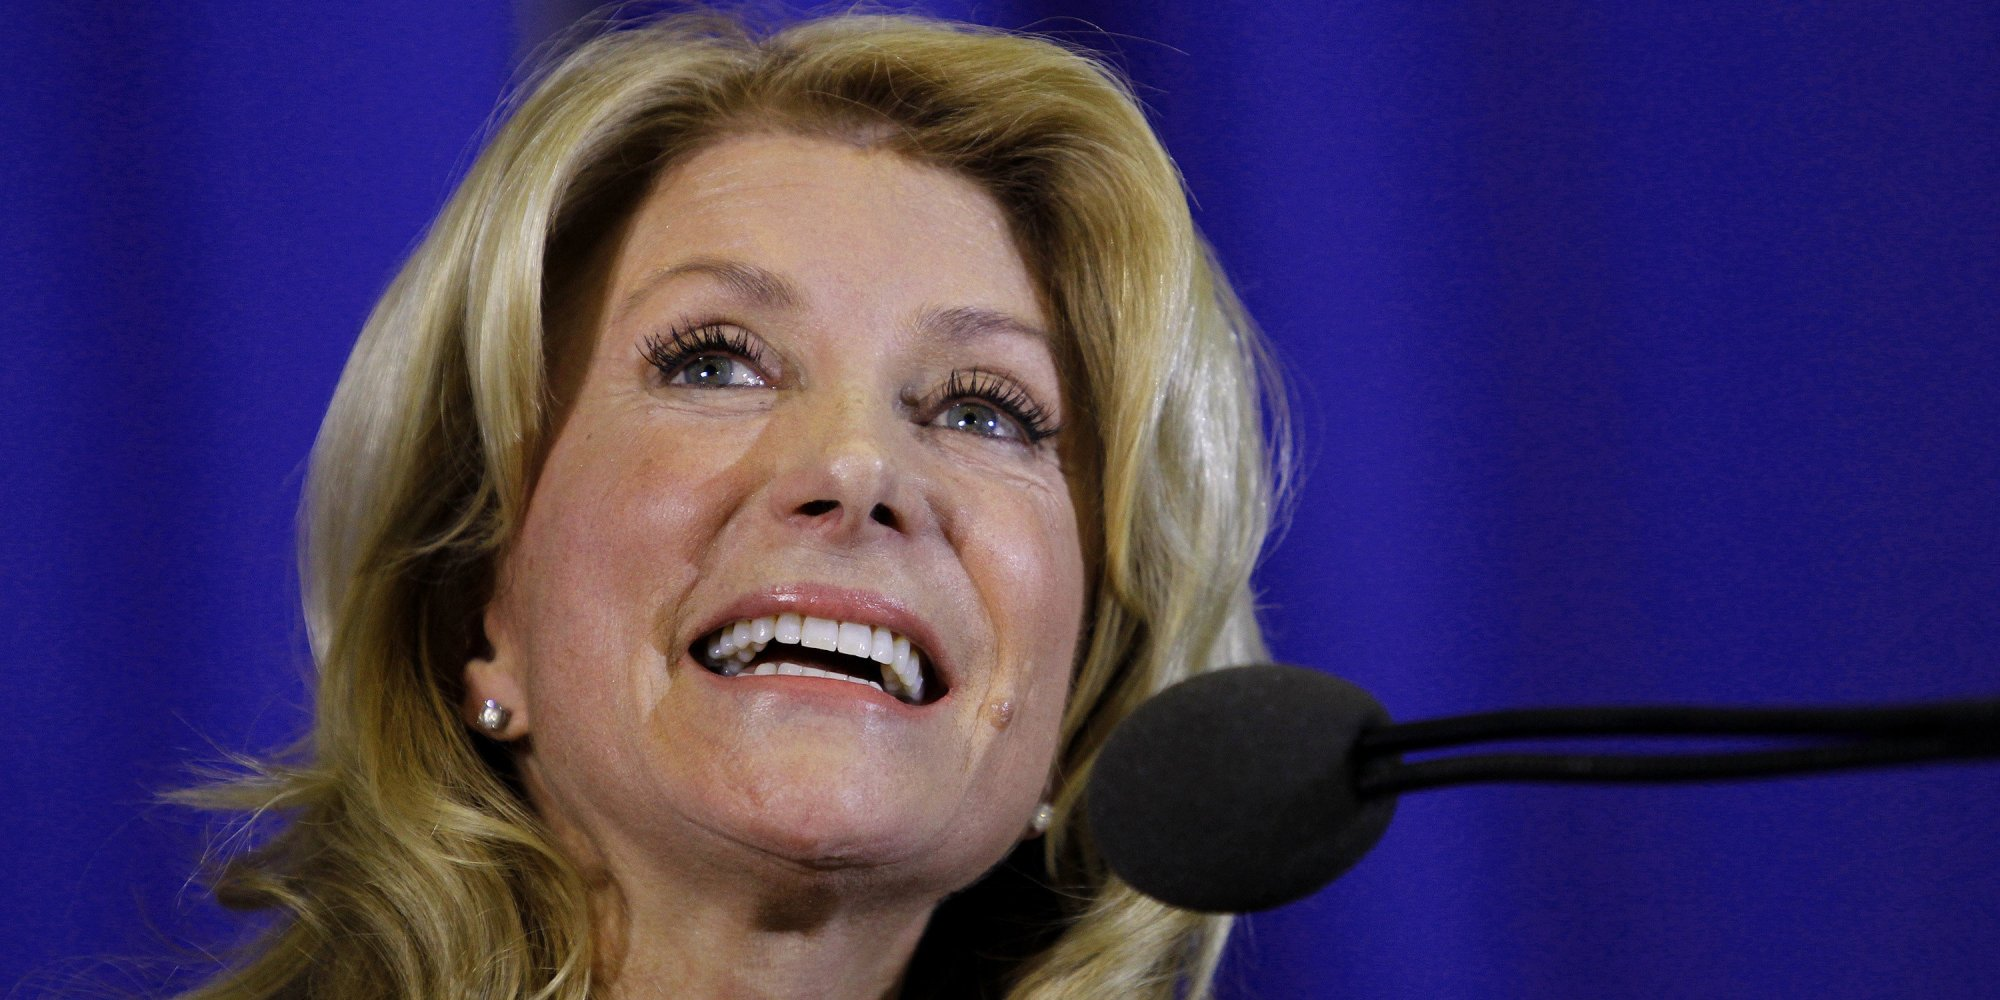 Elizabeth Wendy Profiles Facebook